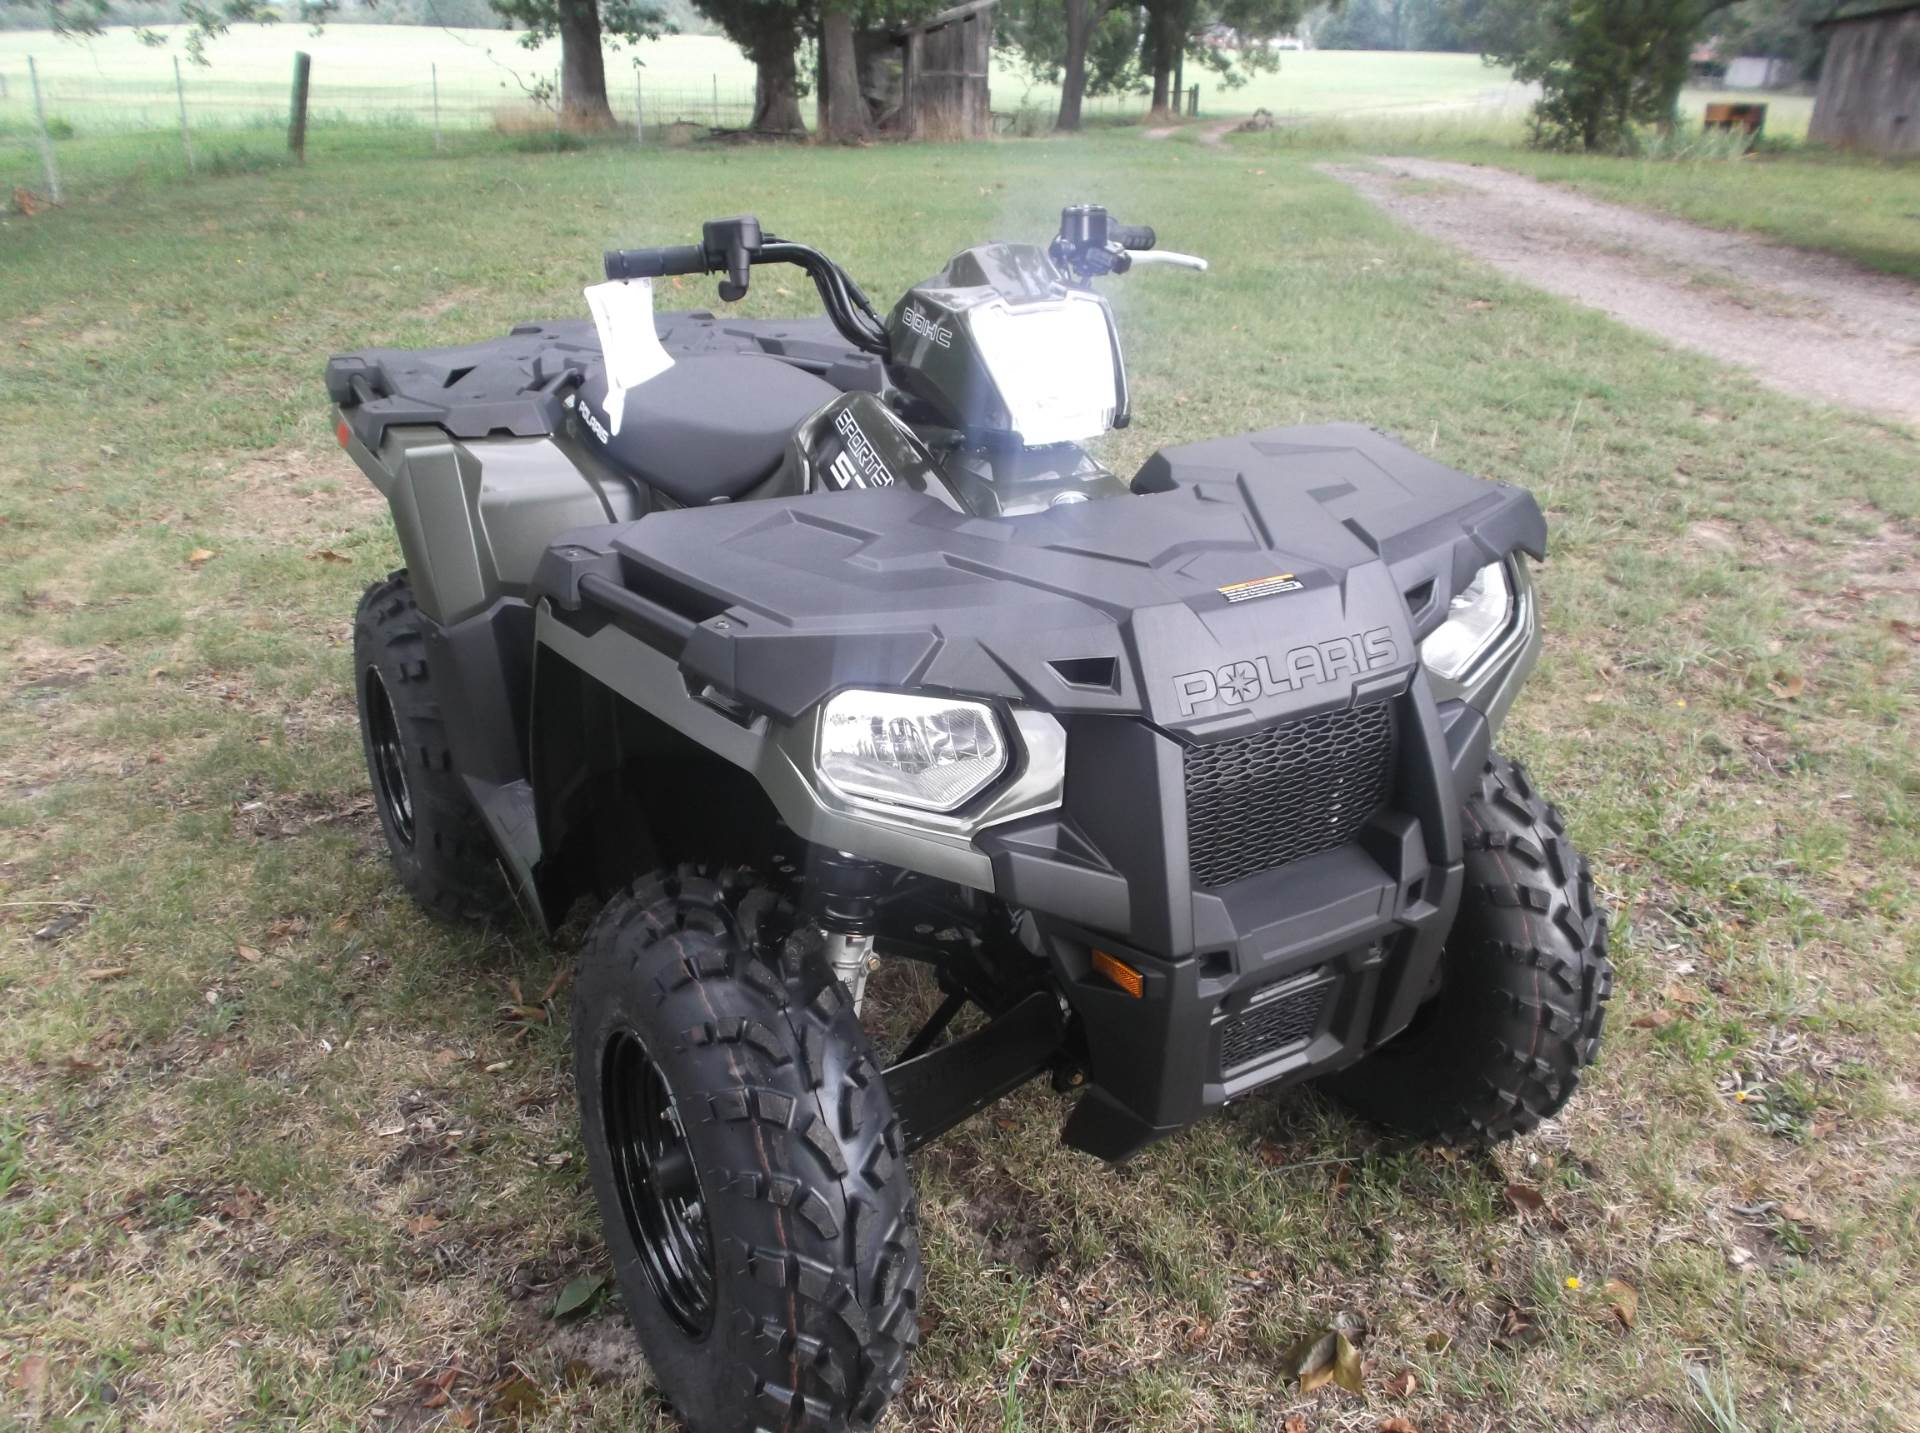 2019 Polaris Sportsman 570 in Greer, South Carolina - Photo 1